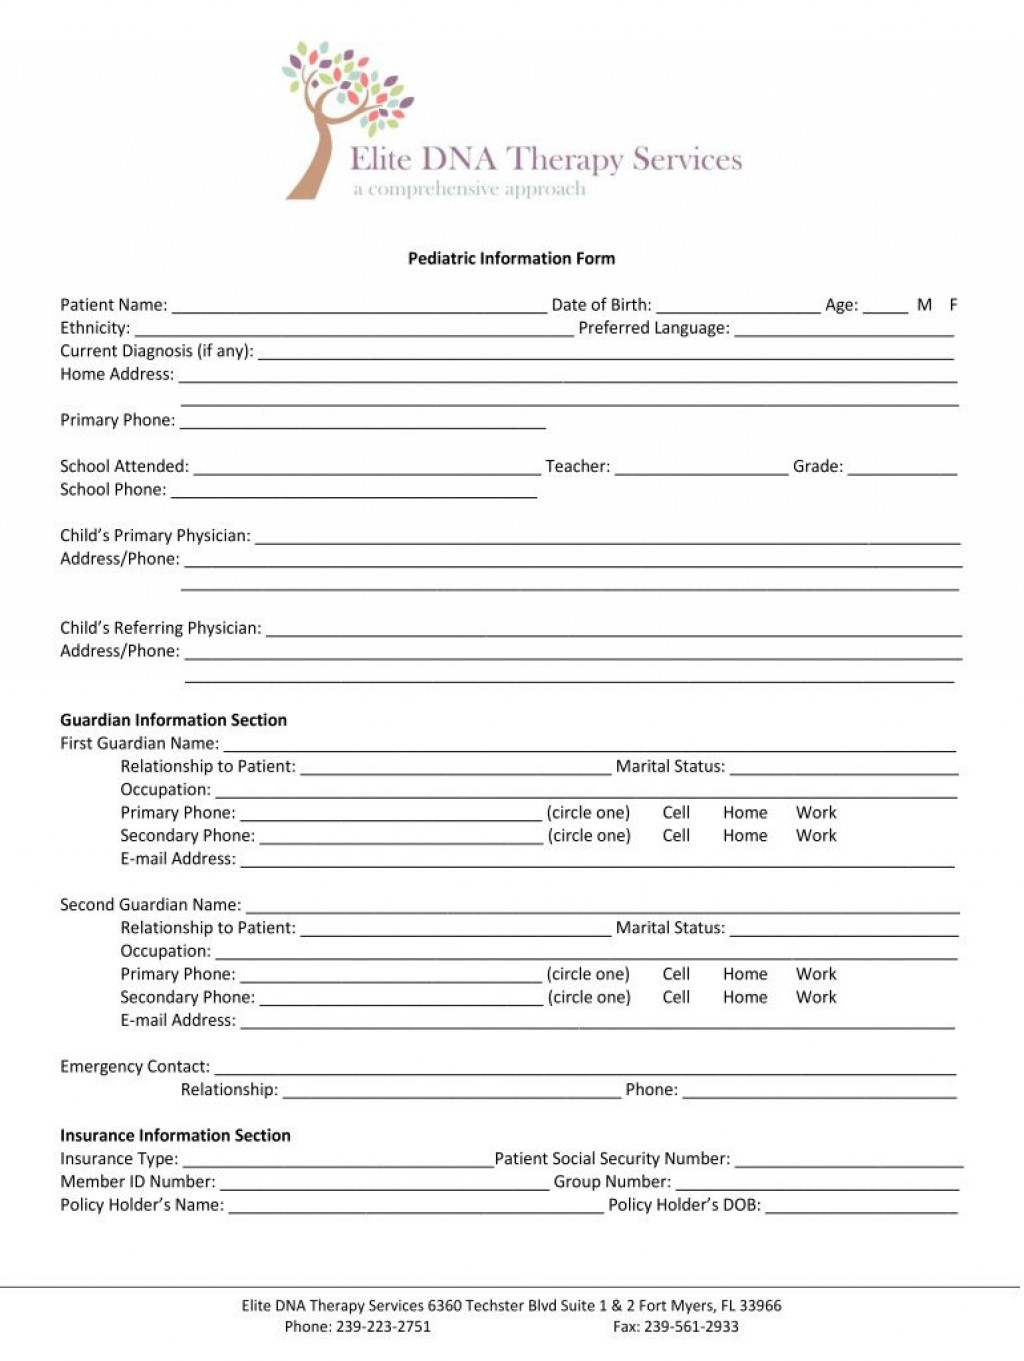 005 Unique Counseling Intake Form Template Design  Templates Therapy Massage FreeLarge